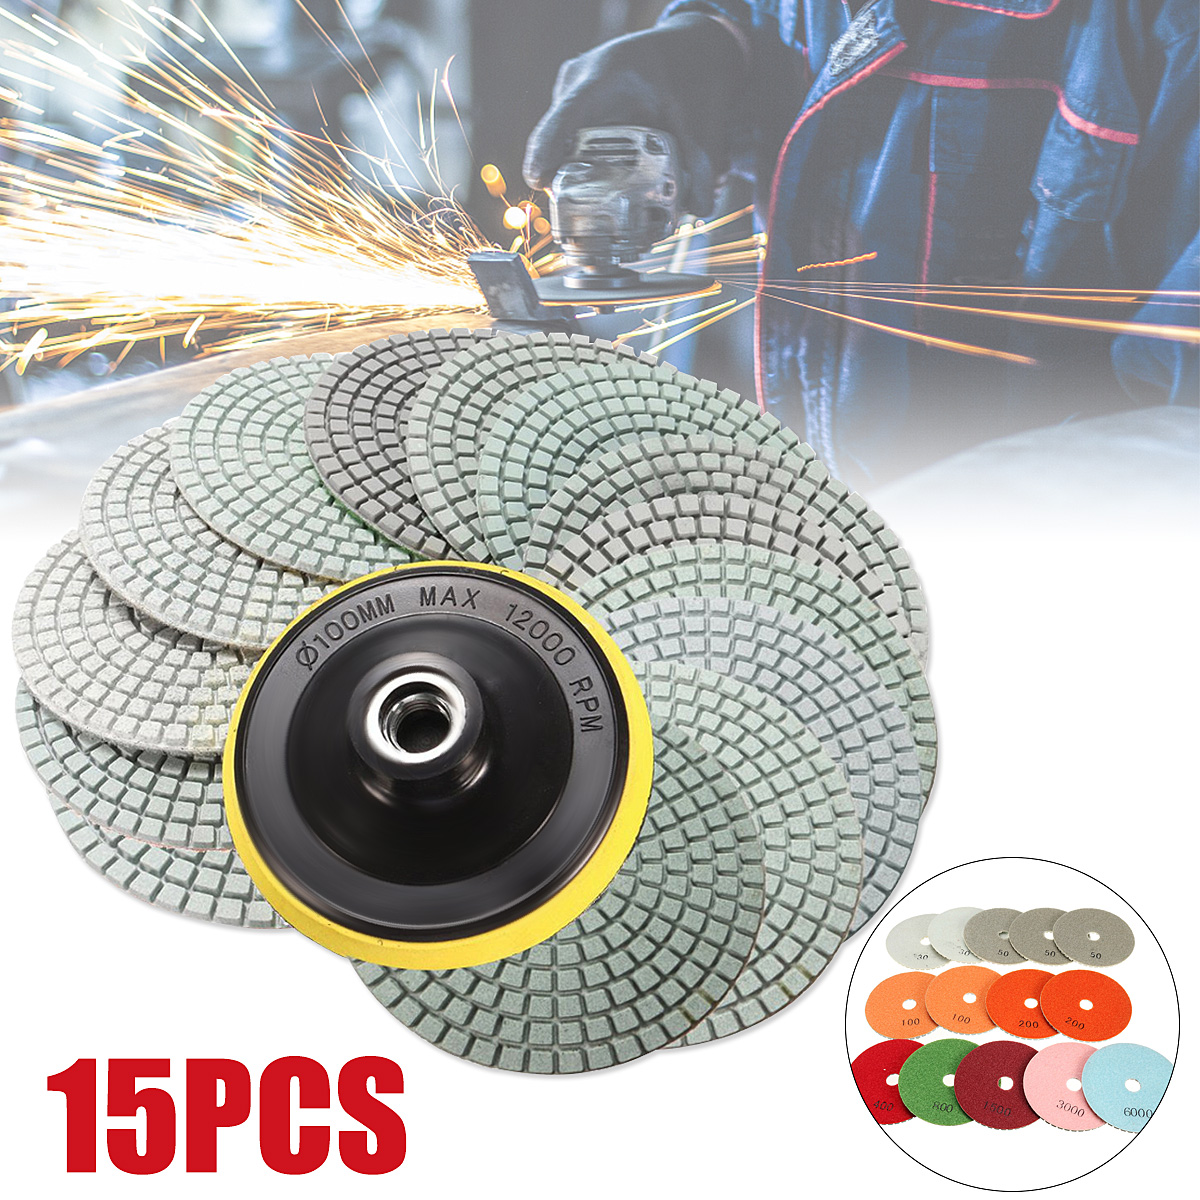 14Pcs 100mm 4inch Wet Dry Diamond Polishing Pad Grit 30#50#100#200#400#800#1500#3000#6000#+M14 For Granite Concrete Stone Marble free shipping coarse medium fine grit 4 inch diamond turbo cup wheels m14 thread for grinding concrete and stone 3pcs set